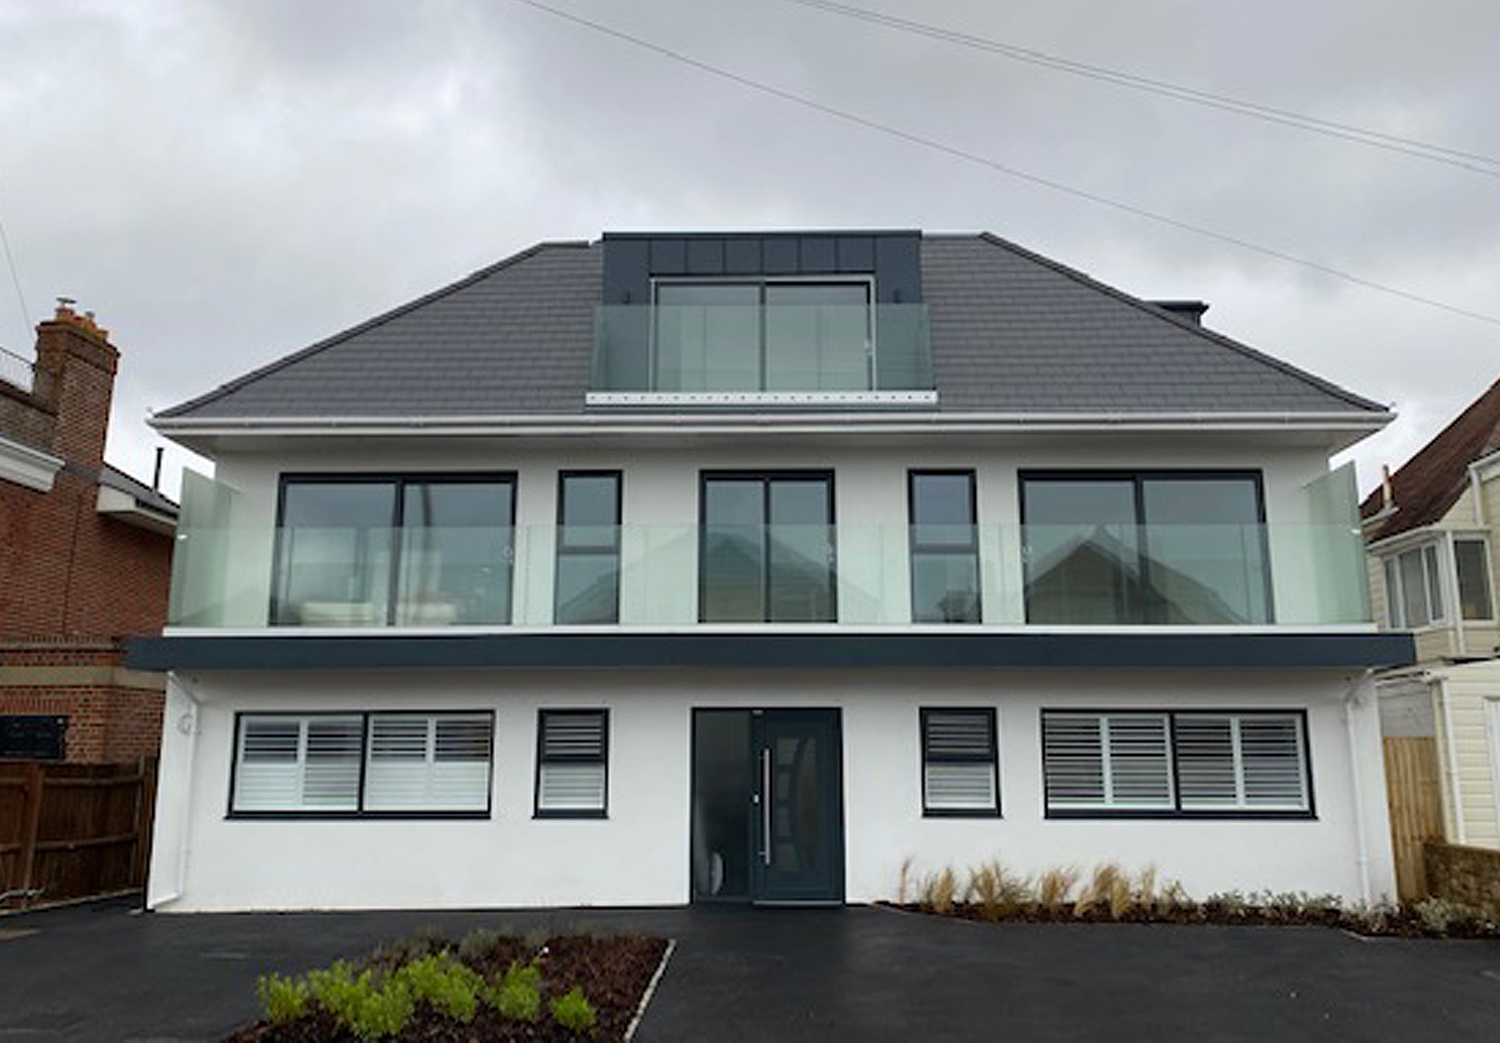 Southbourne. Completed 2020. One 3 bedroom flat and three 2 bedroom flats